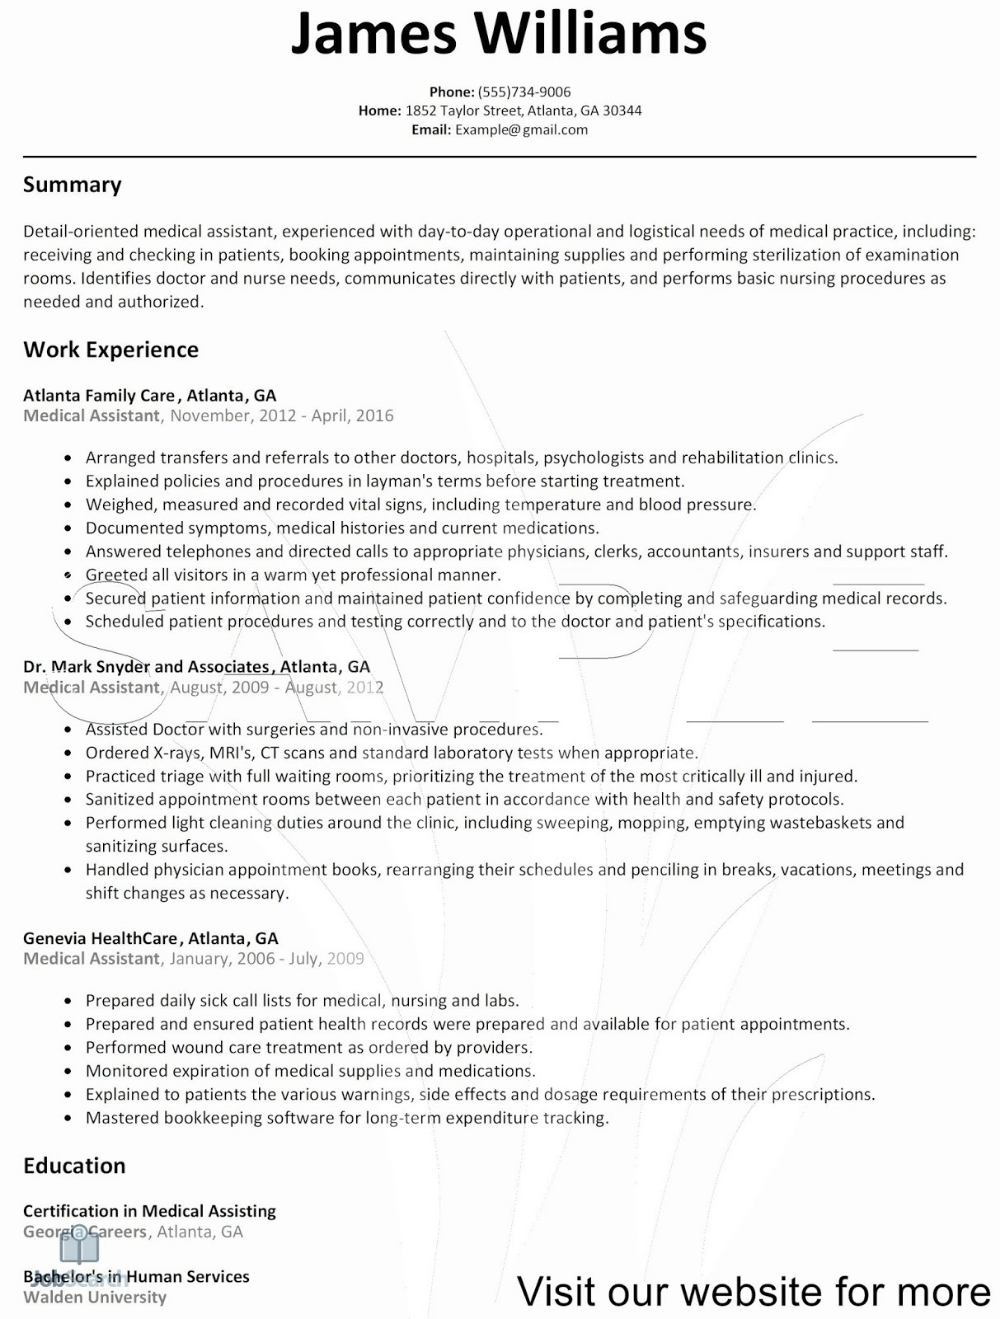 Resume for human resources resume for human resources job